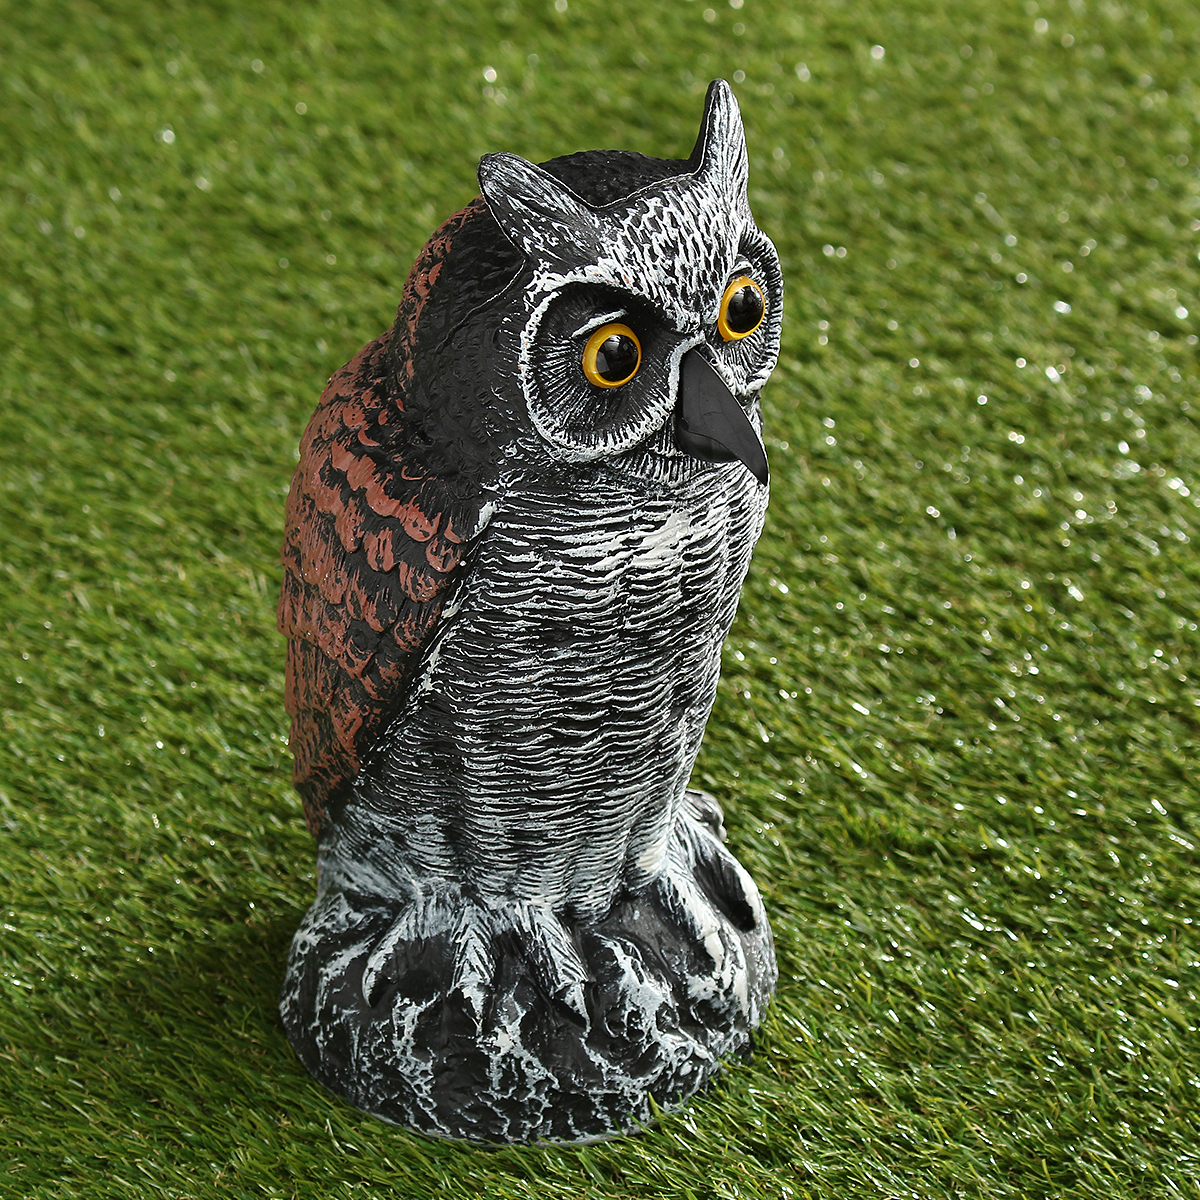 Fake Standing Owl Bird Model Toys Hunting Shooting Decoy Deterrent Home Garden Decorations